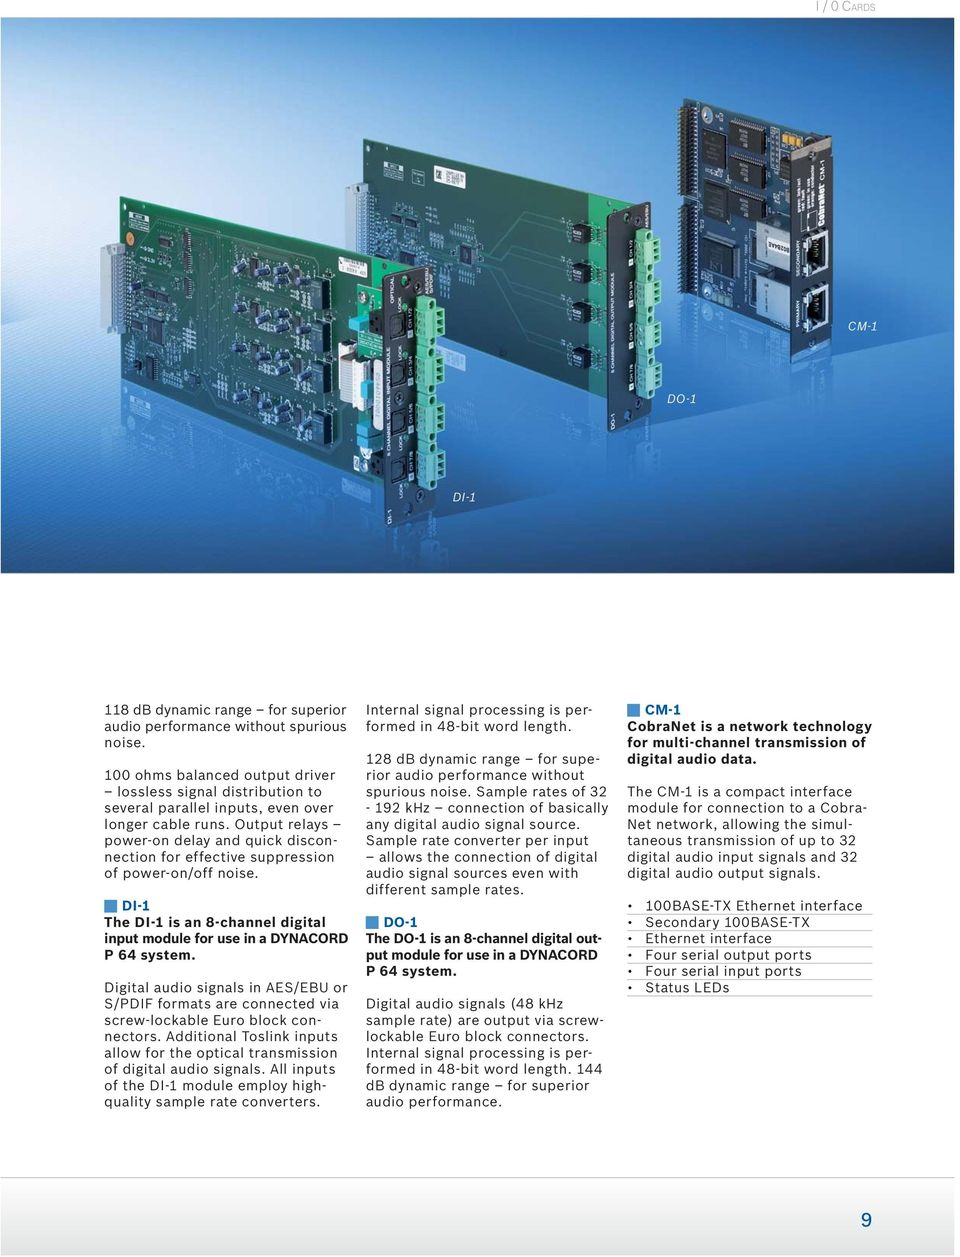 Output relays poweron delay and quick disconnection for effective suppression of poweron/off noise. DI1 The DI1 is an 8channel digital input module for use in a DYNACORD P 64 system.